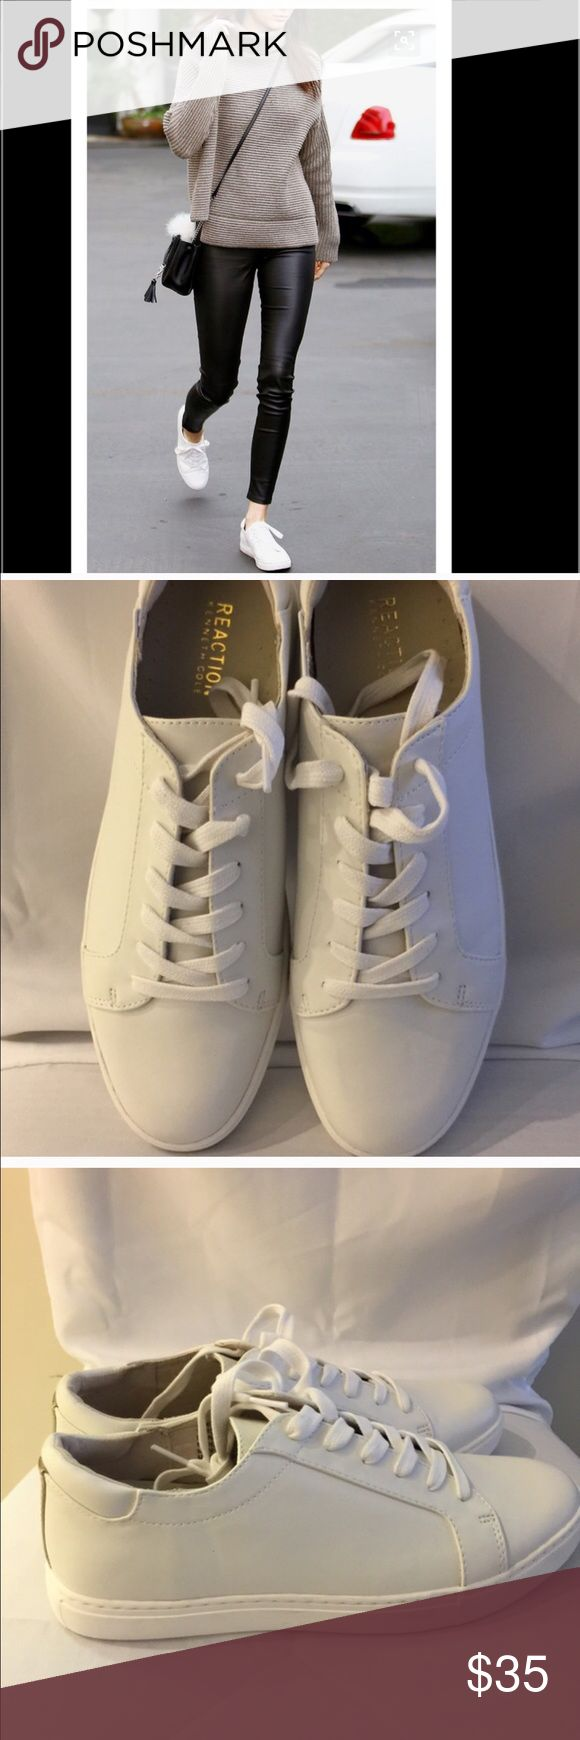 """New Leather white Sneakers Brand new leather white sneakers. All white shoe including the sole. Metallic gold strip on the back the shoe. Perfect sneaker to complete a minimalist look. White sneakers are on trend. Like Stan Smith look. Don't miss out on this great deal. 🎉Price Firm🎉  First pic is """"create the look"""" with these. Kenneth Cole Reaction Shoes Sneakers"""